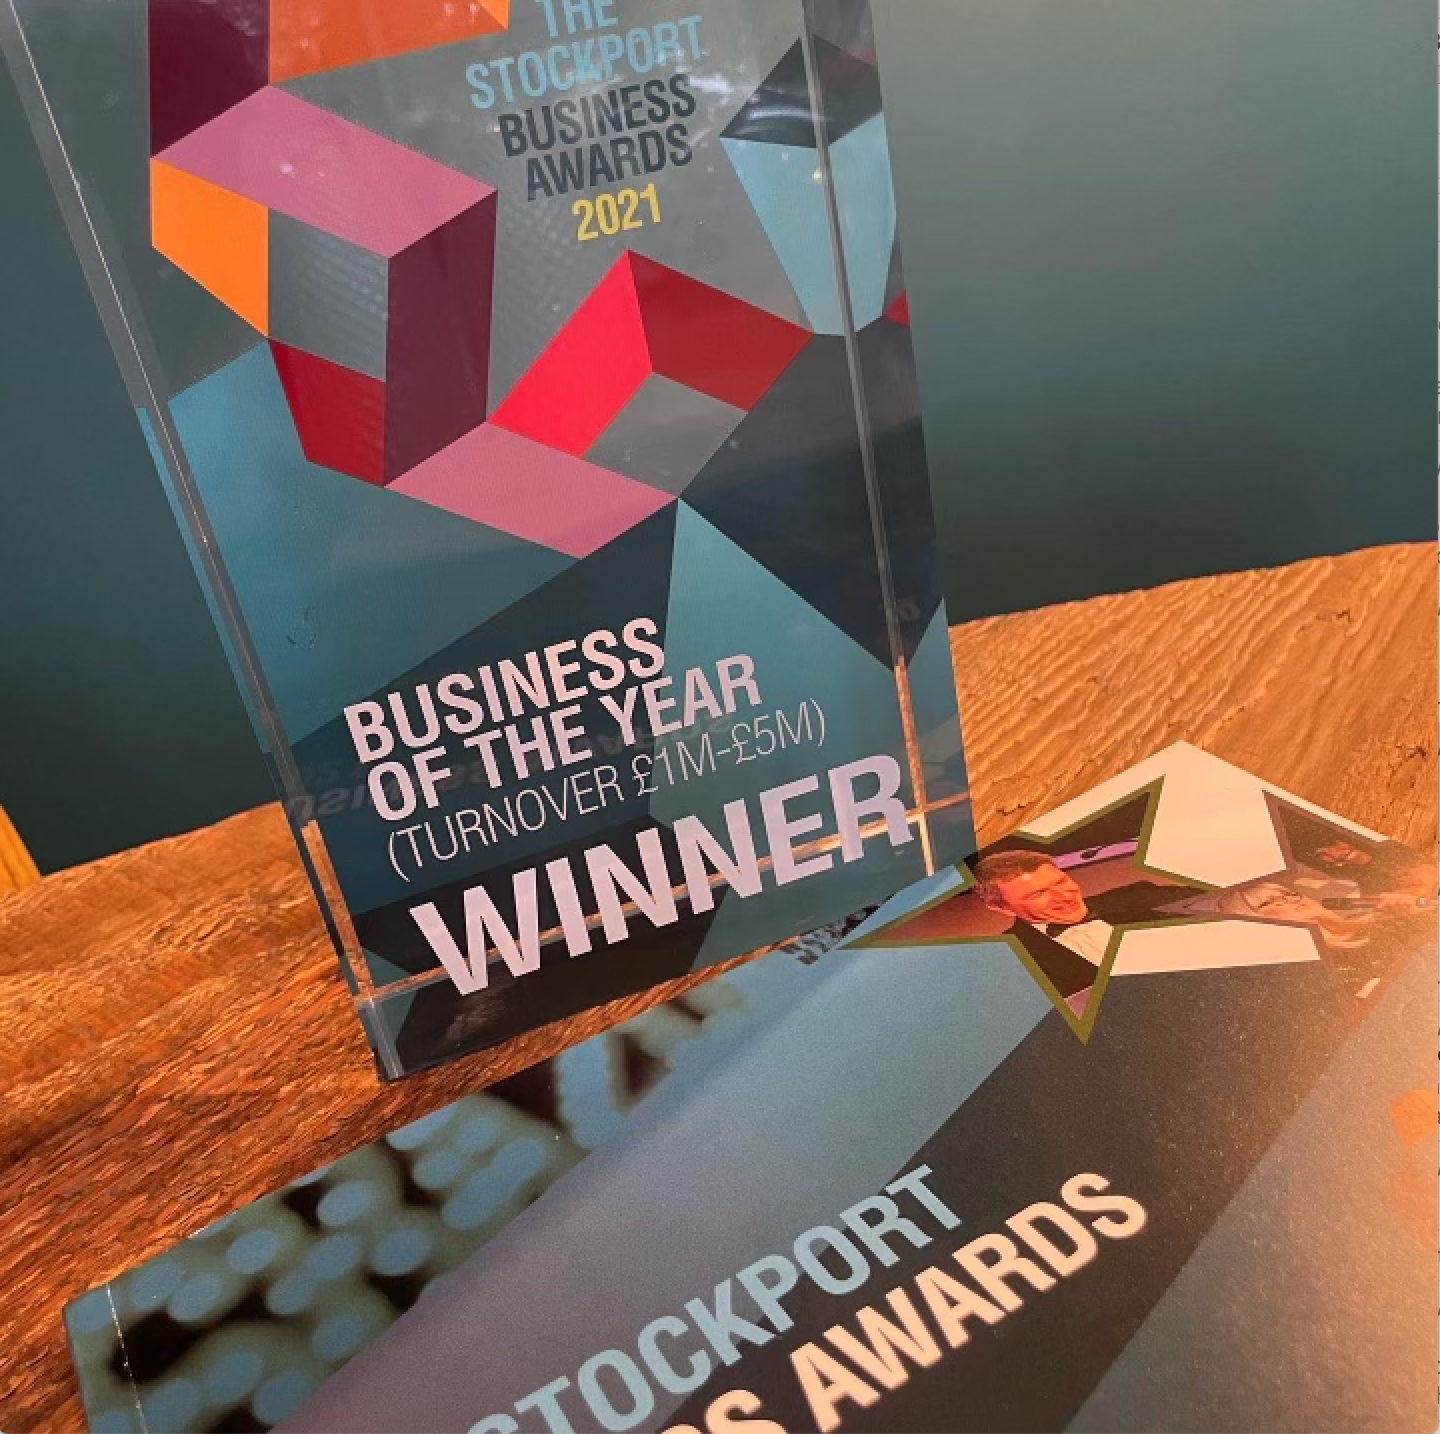 Above: The Stockport Business Awards trophy.